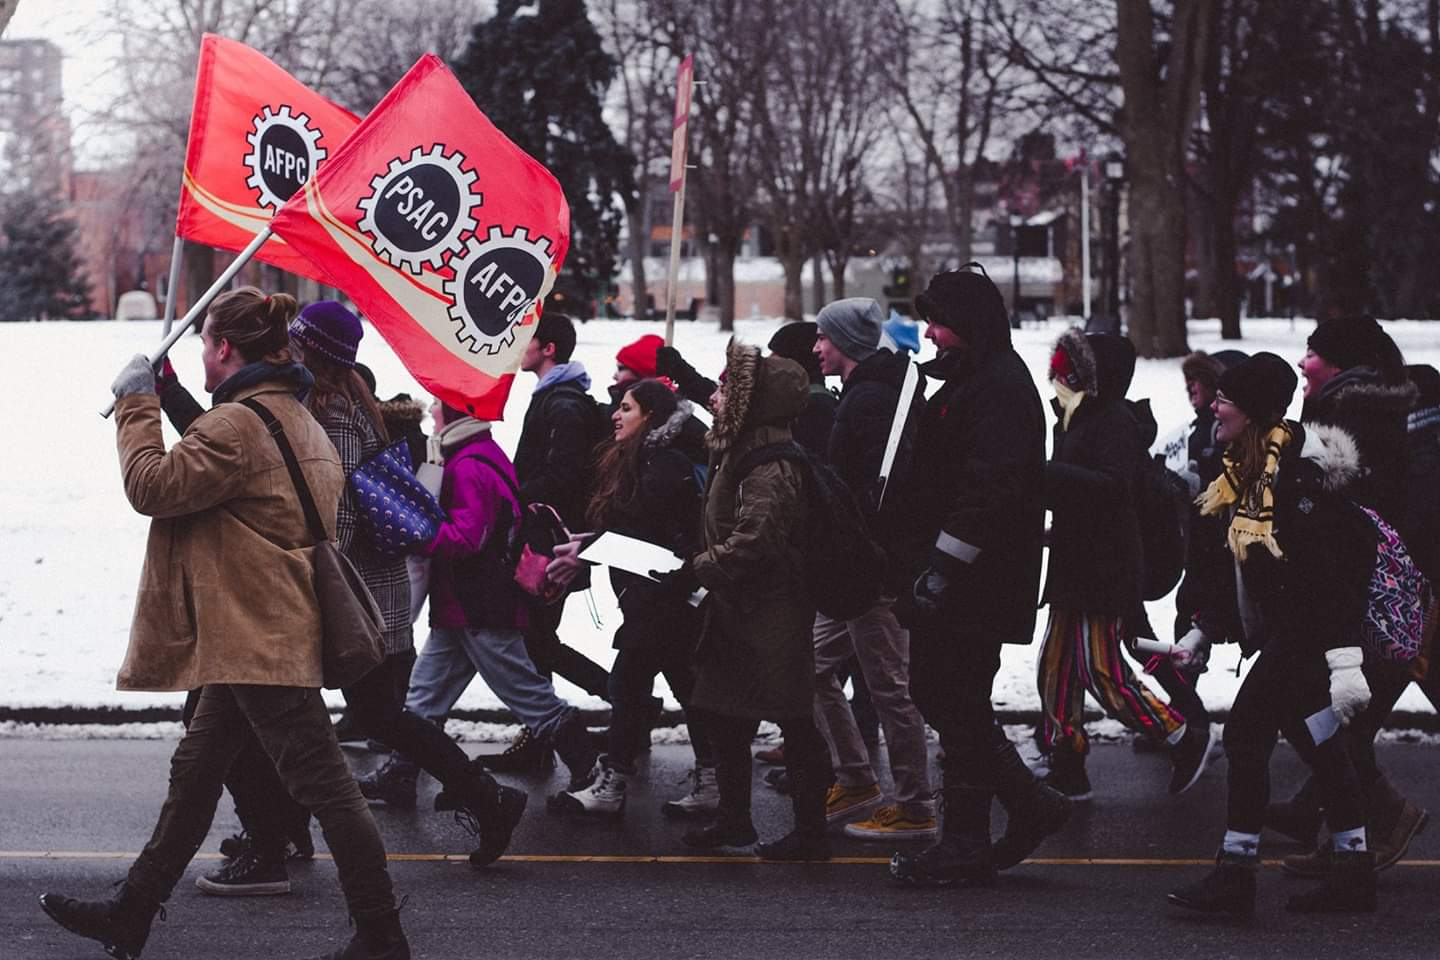 Fanshawe College Walkout: March 20th at Noon